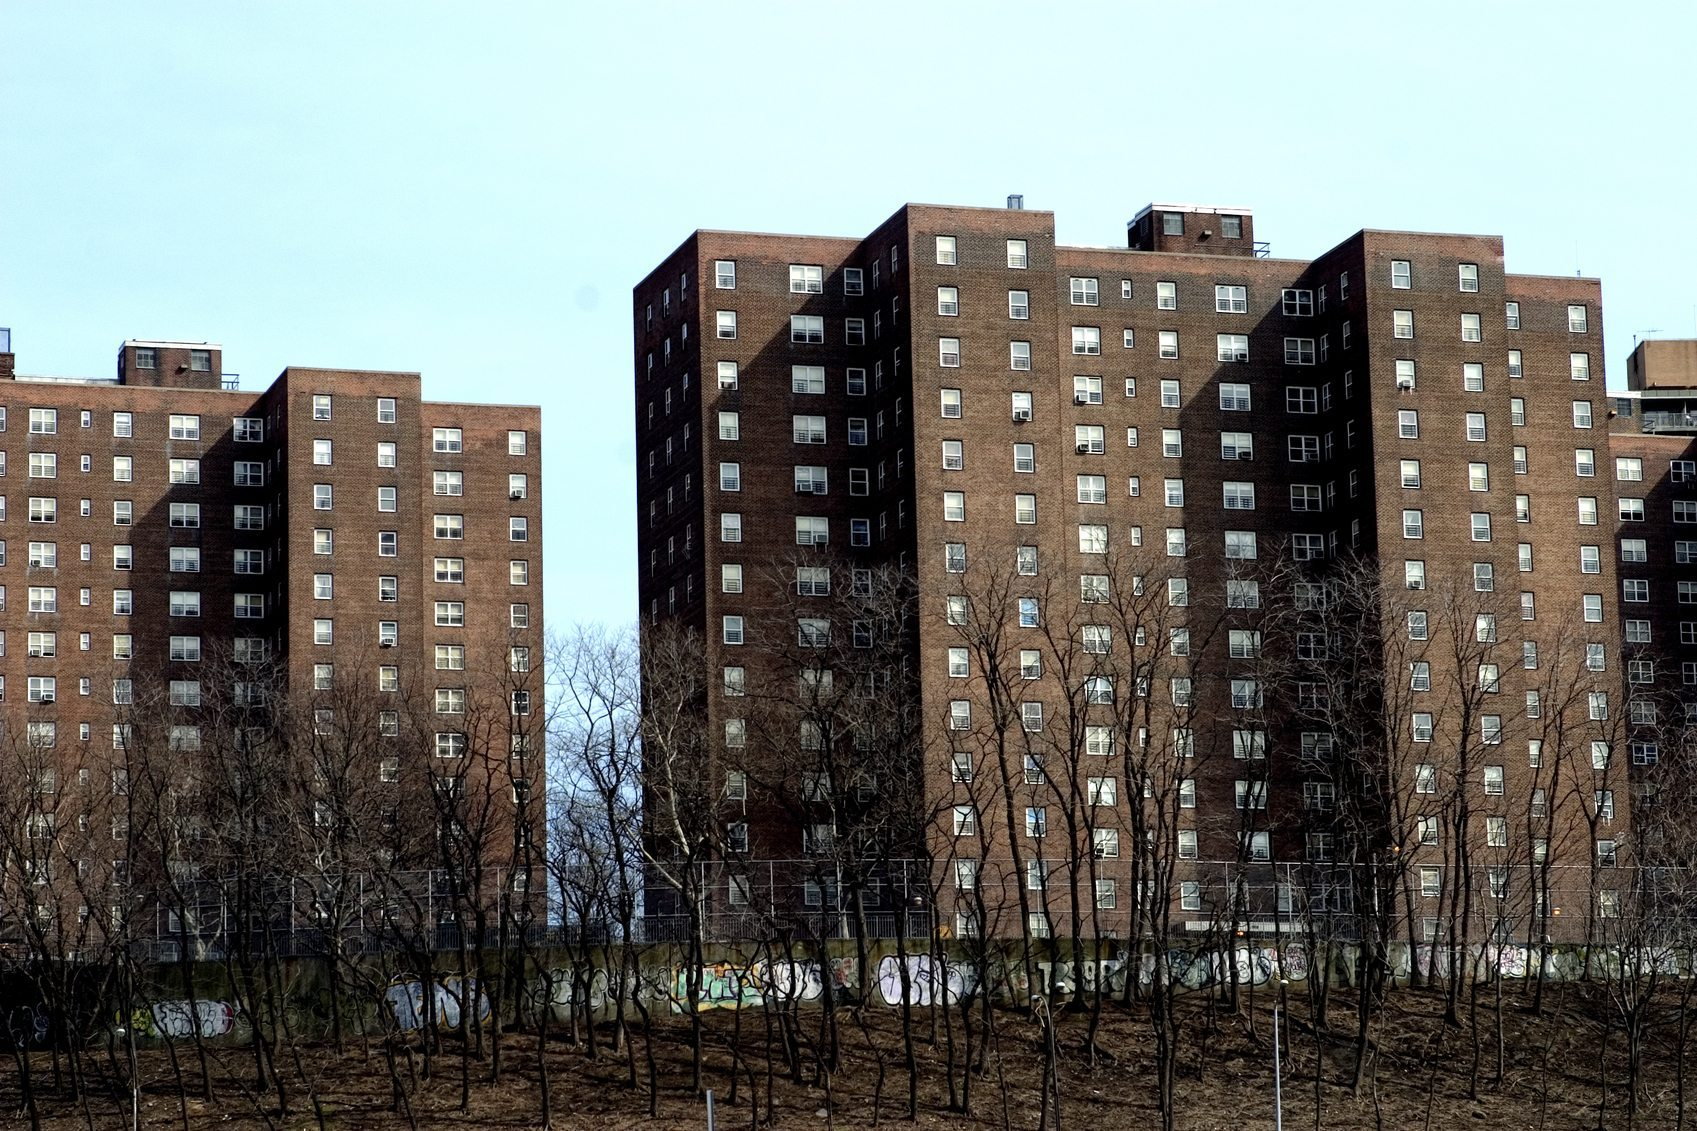 Peabody interview - Public Housing